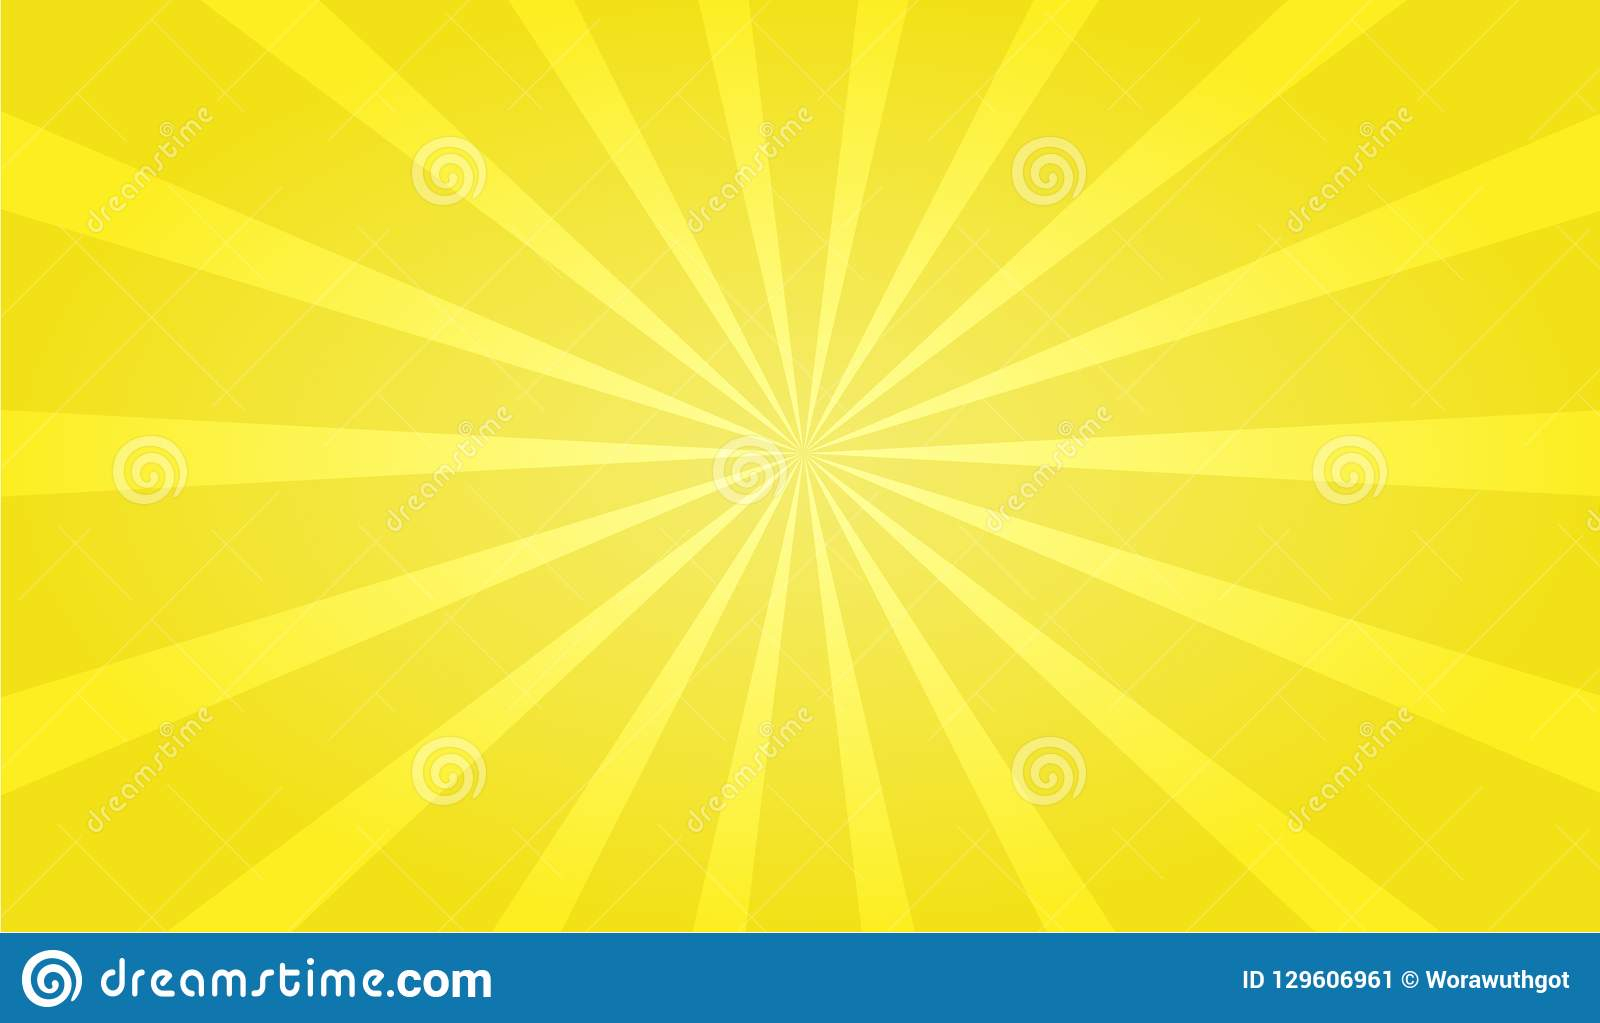 bom zoom out yellow background